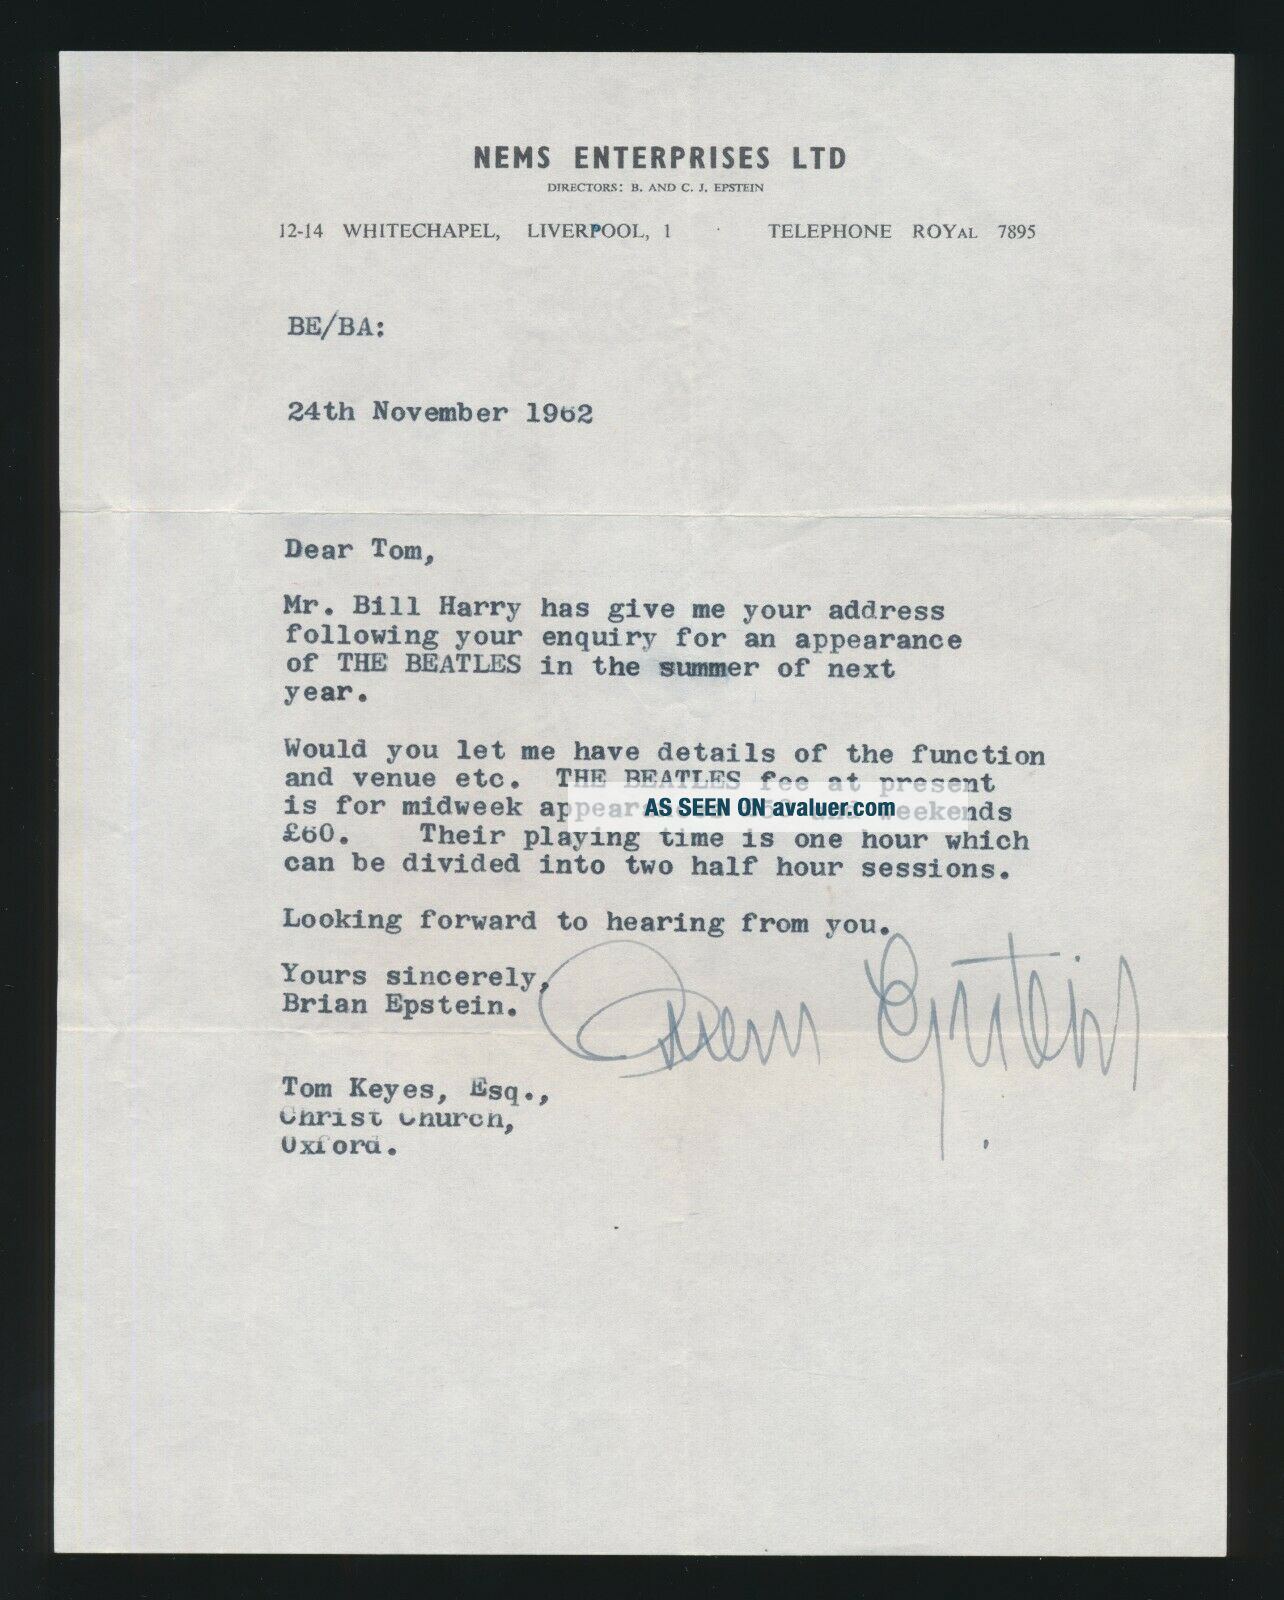 Beatles ULTRA RARE & HISTORIC 1962 BRIAN EPSTEIN SIGNED LETTER BEATLES SHOWS